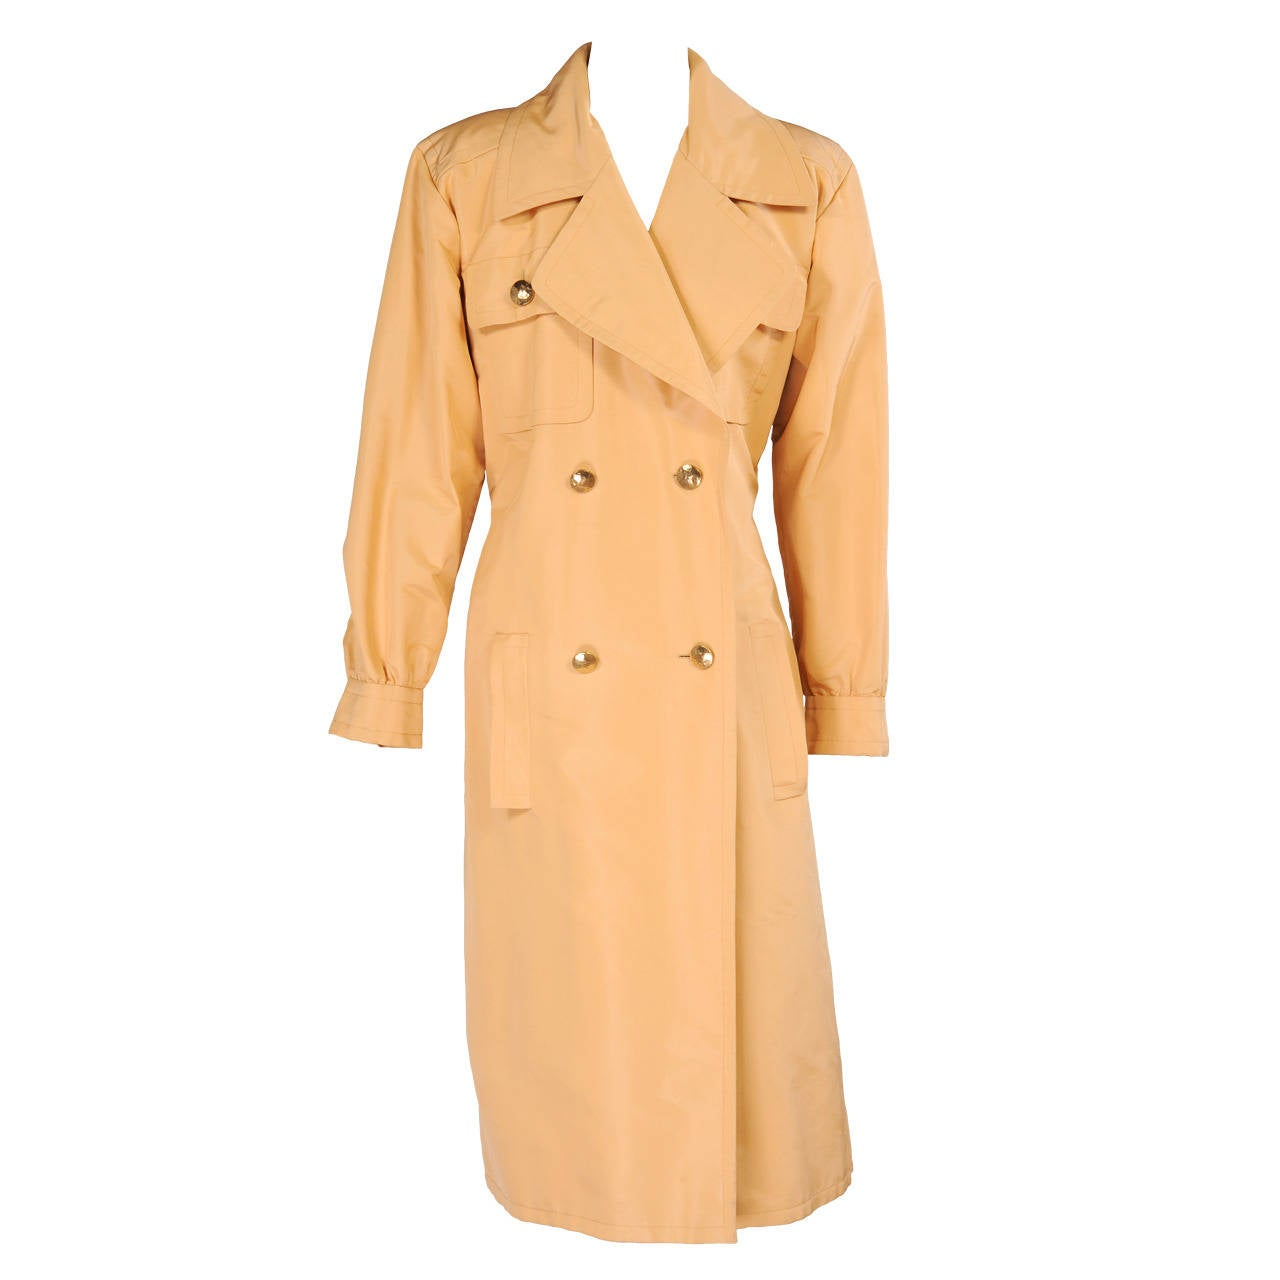 Givenchy Haute Couture Runway Worn Silk Faille Trenchcoat